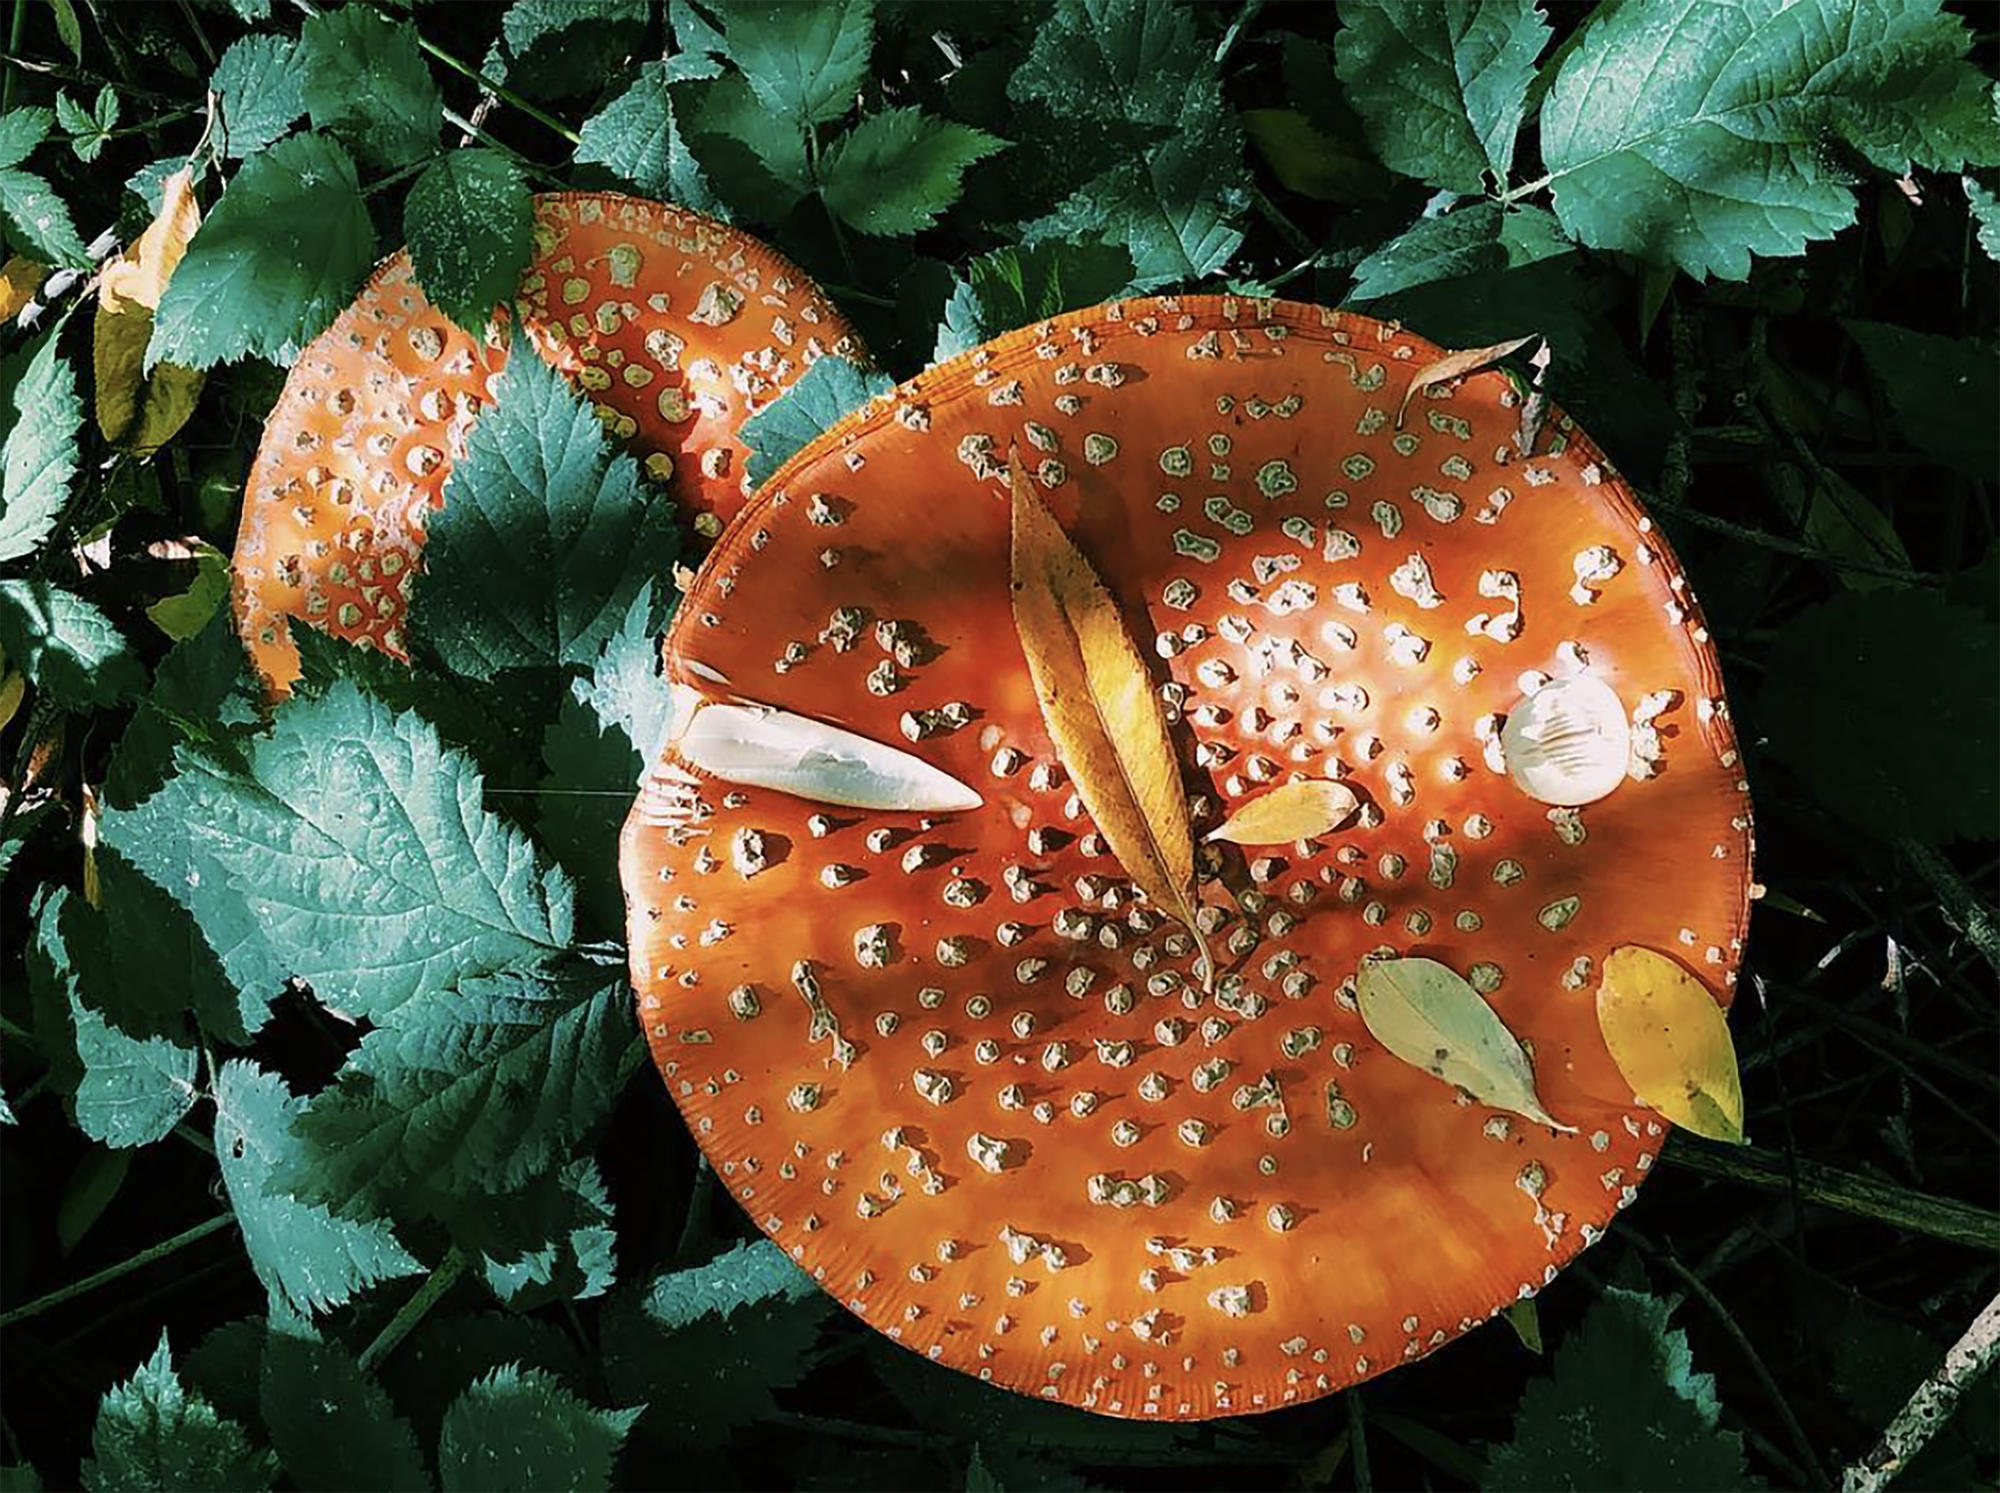 Listen   The risks and rewards of mushroom hunting in the Northwest